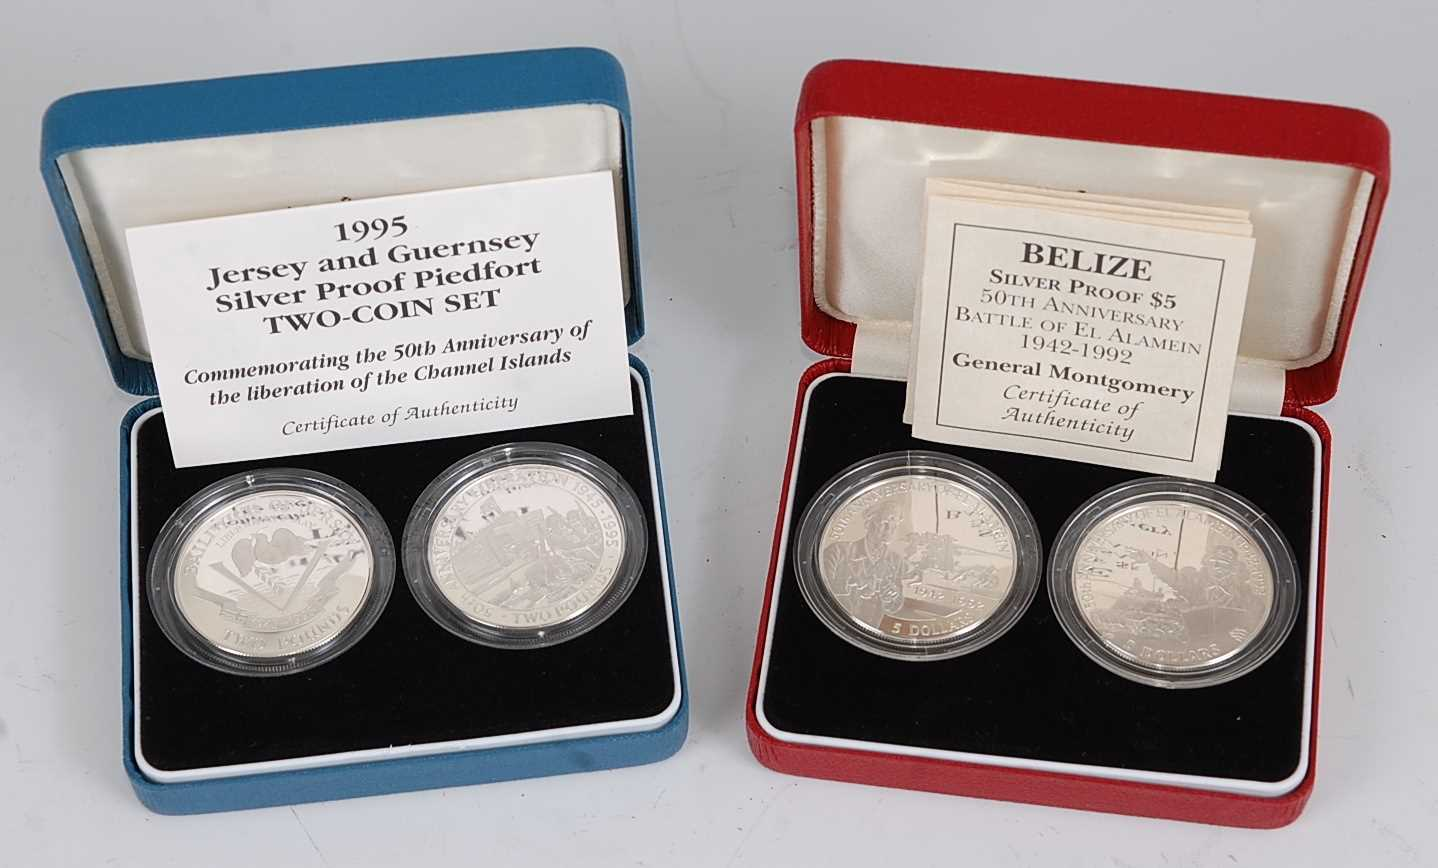 Lot 2015-The Royal Mint, 1995 Jersey and Guernsey 50th...